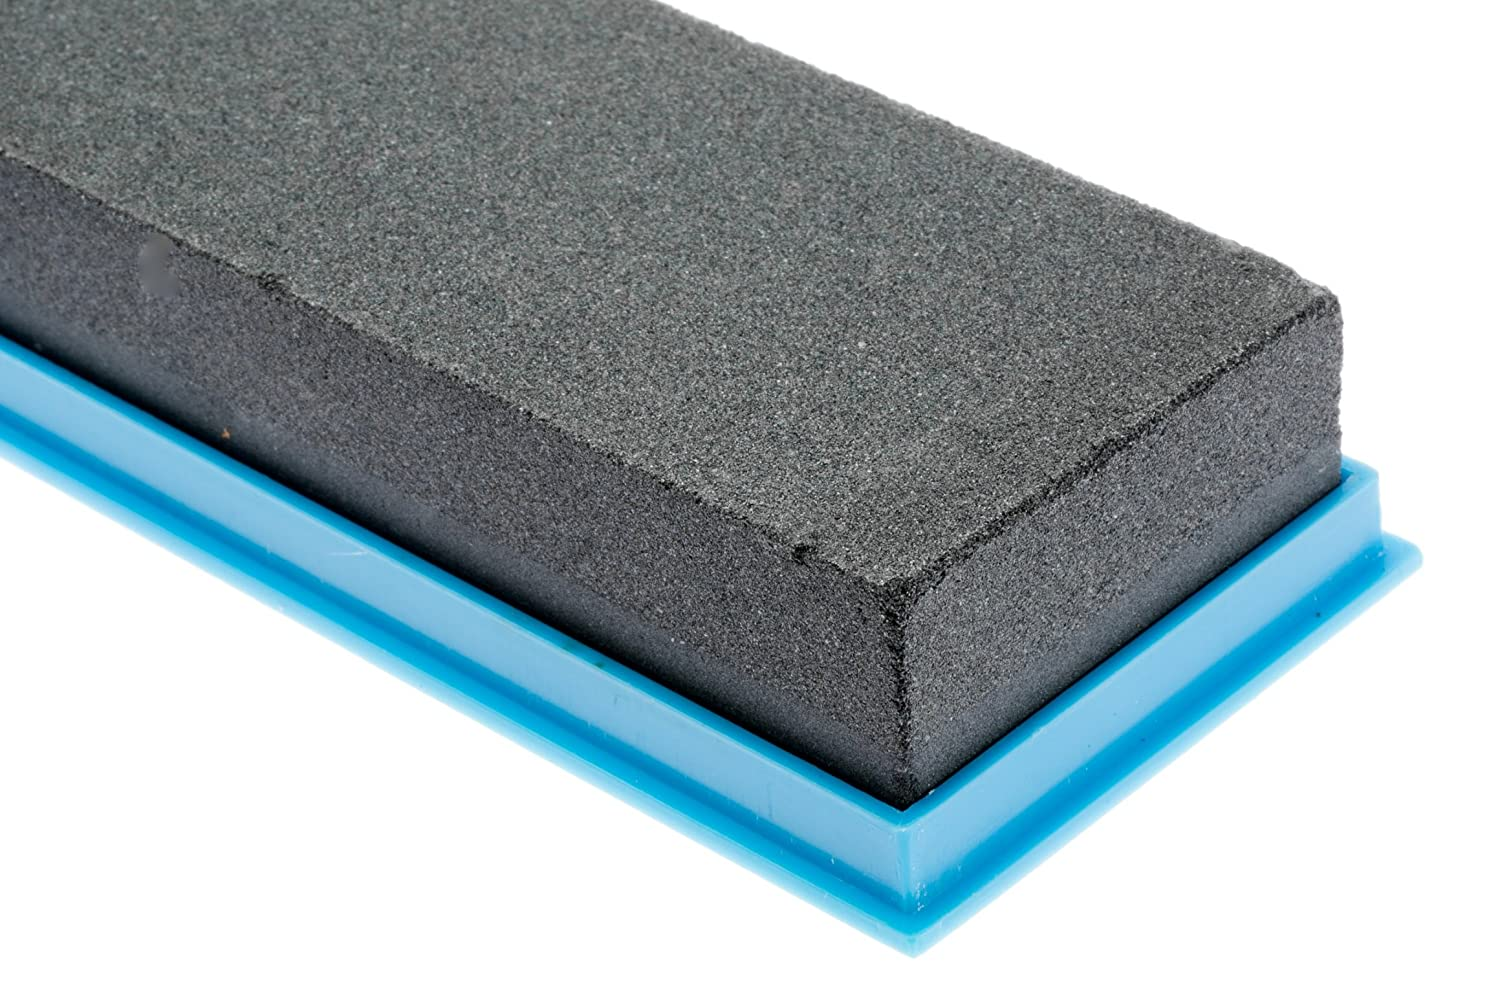 Grits 120 /& 240 SE SS72BK 8 Silicon Carbide Double-Sided Whetstone